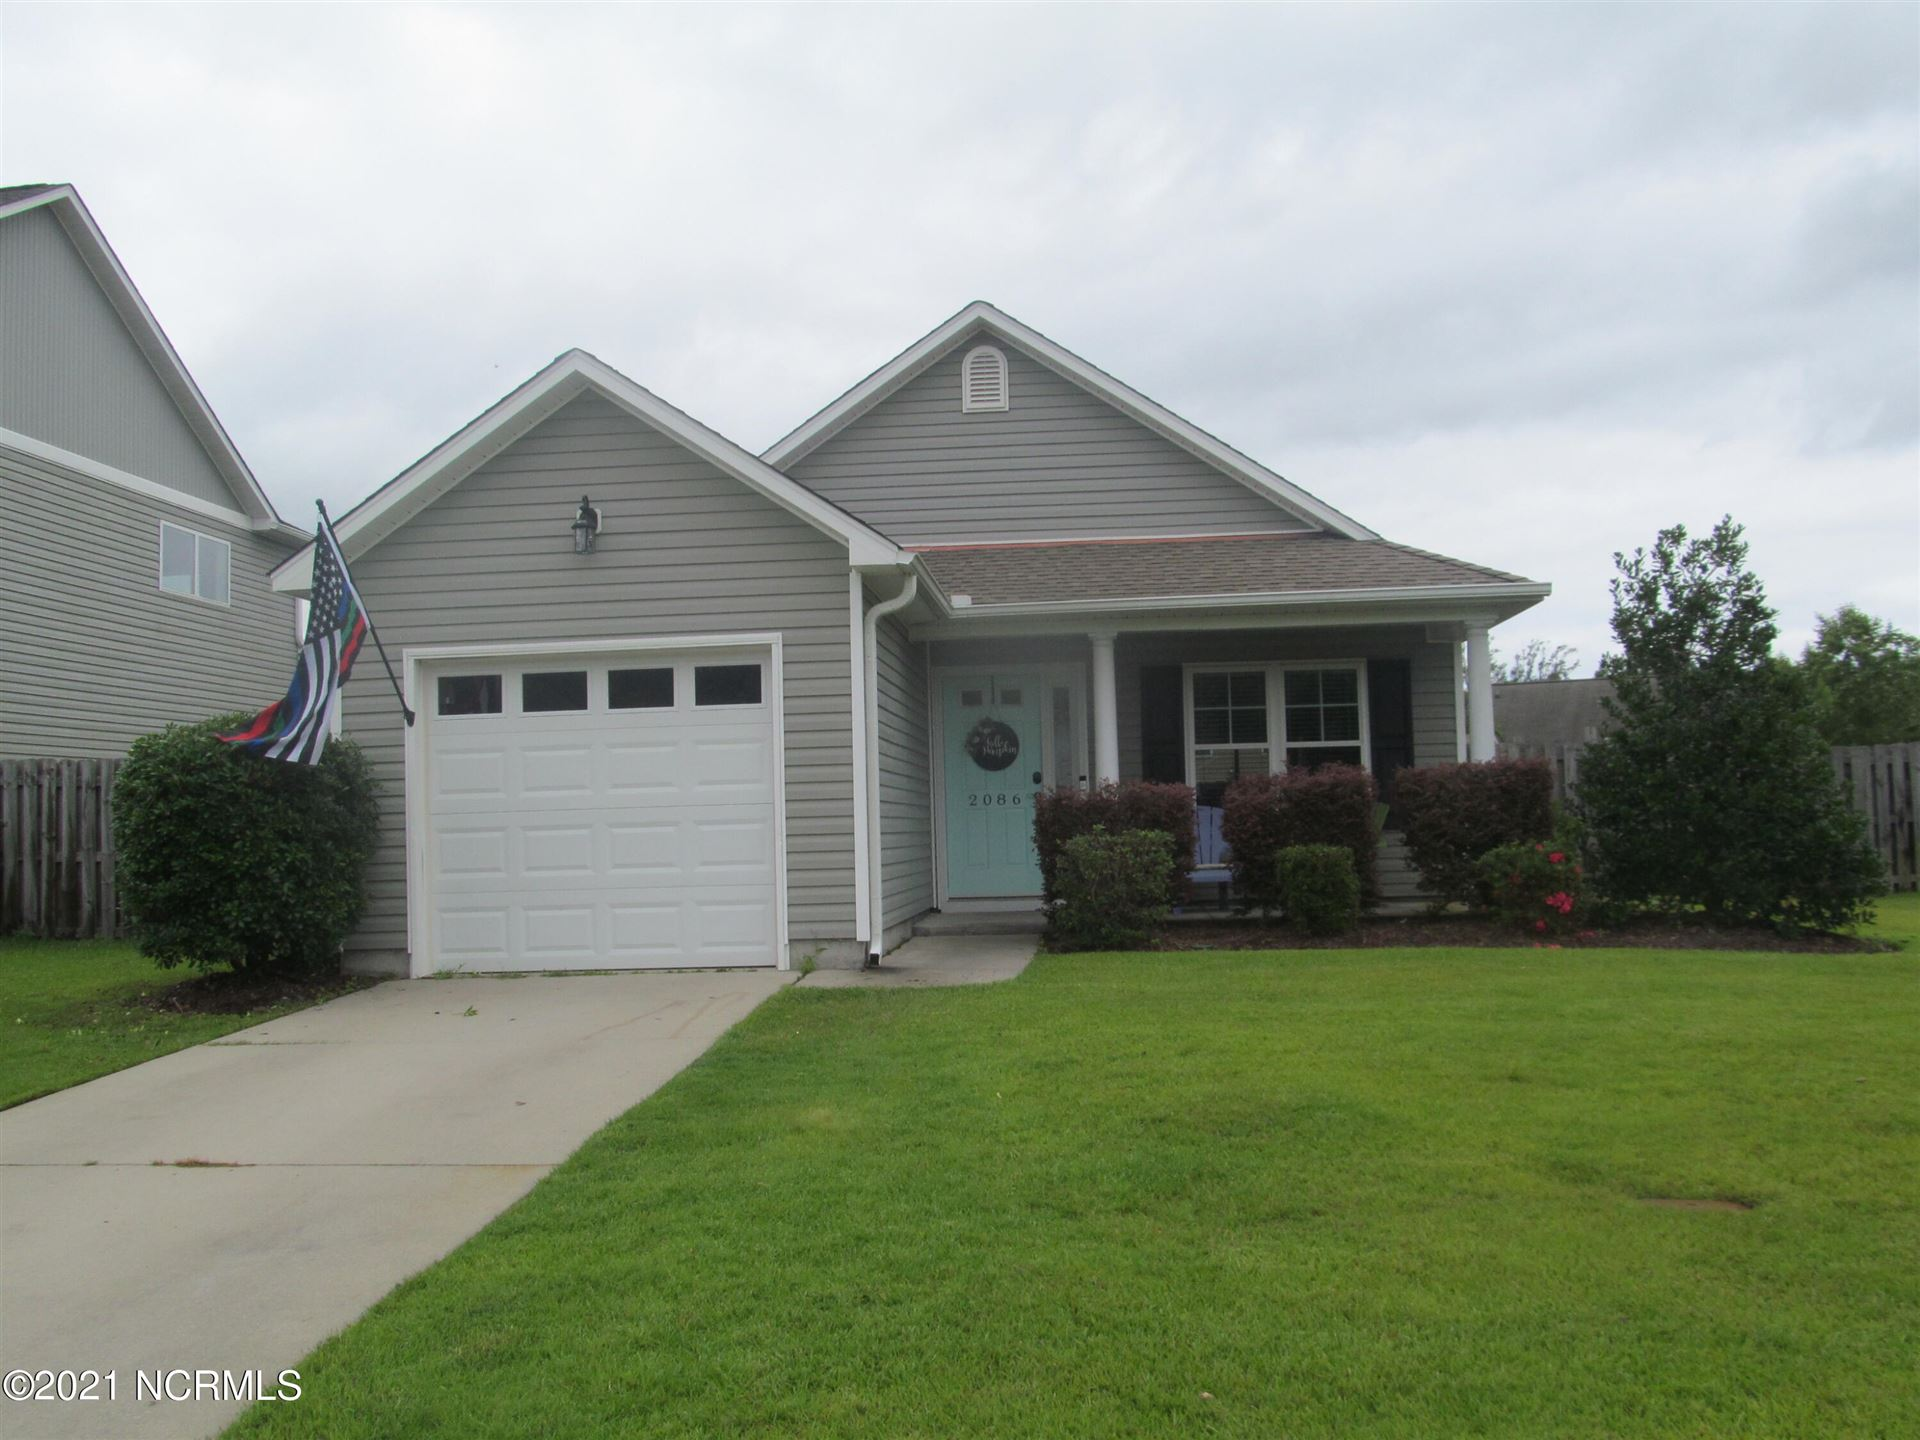 Photo for 2086 Willow Creek, Leland, NC 28451 (MLS # 100284849)